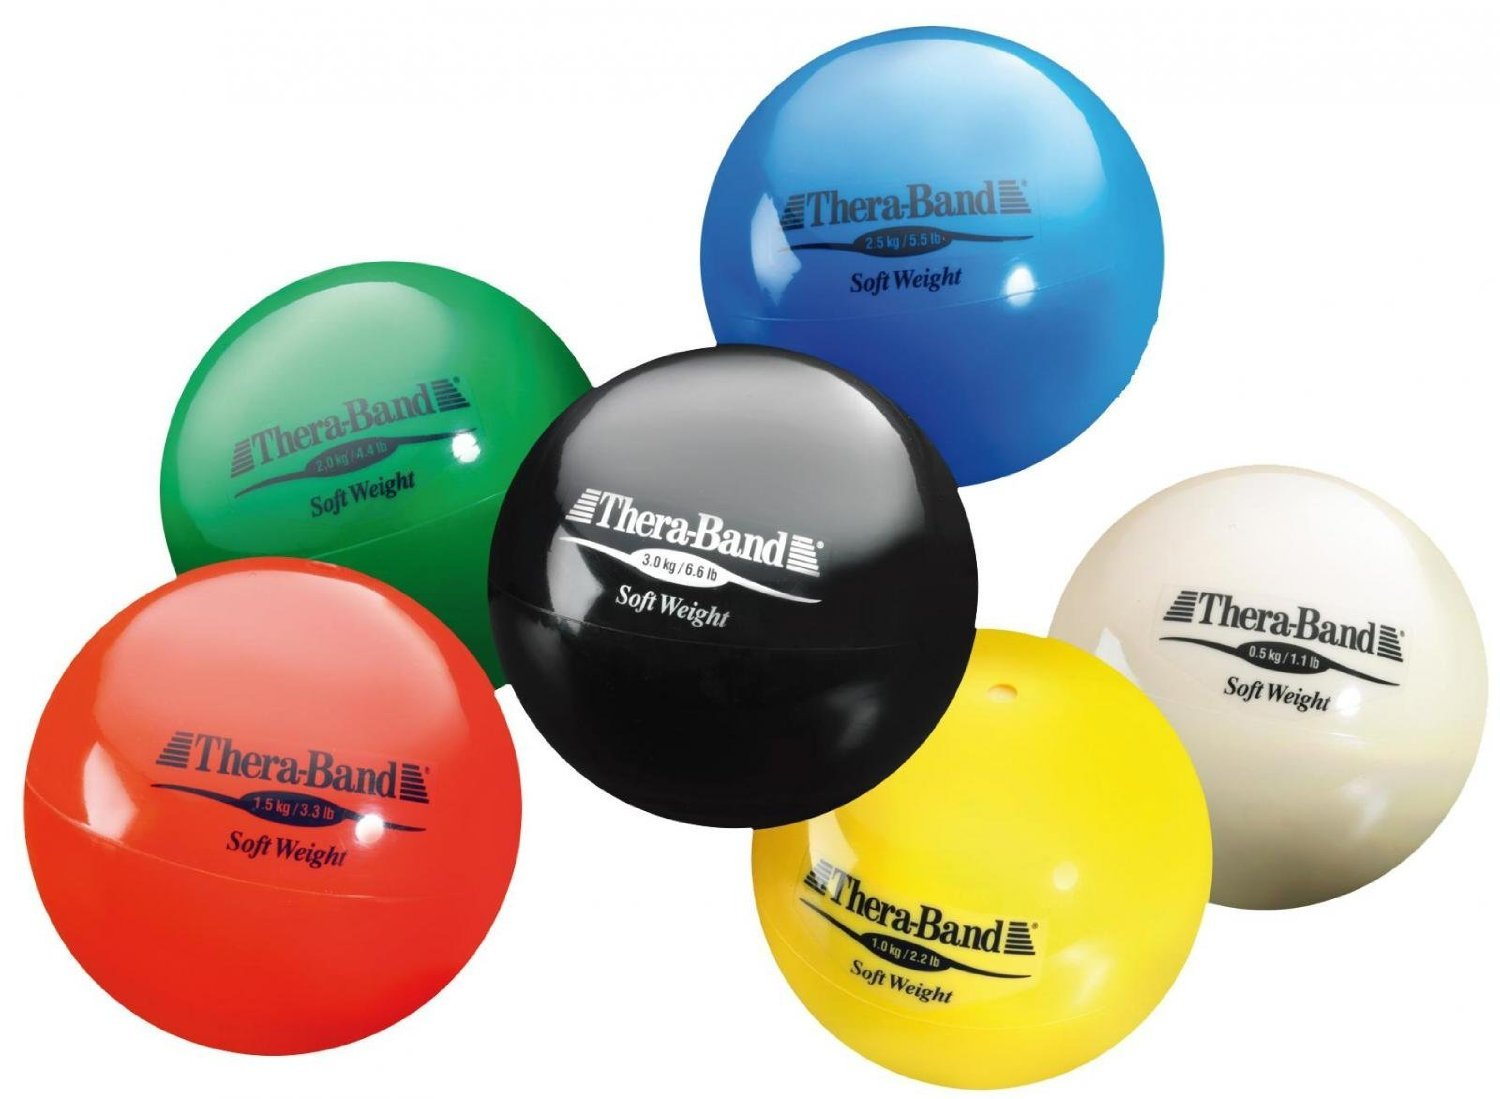 DSS Thera-Band Soft Weights (Ass'td. one each of all six colors total weight 10.5kg)